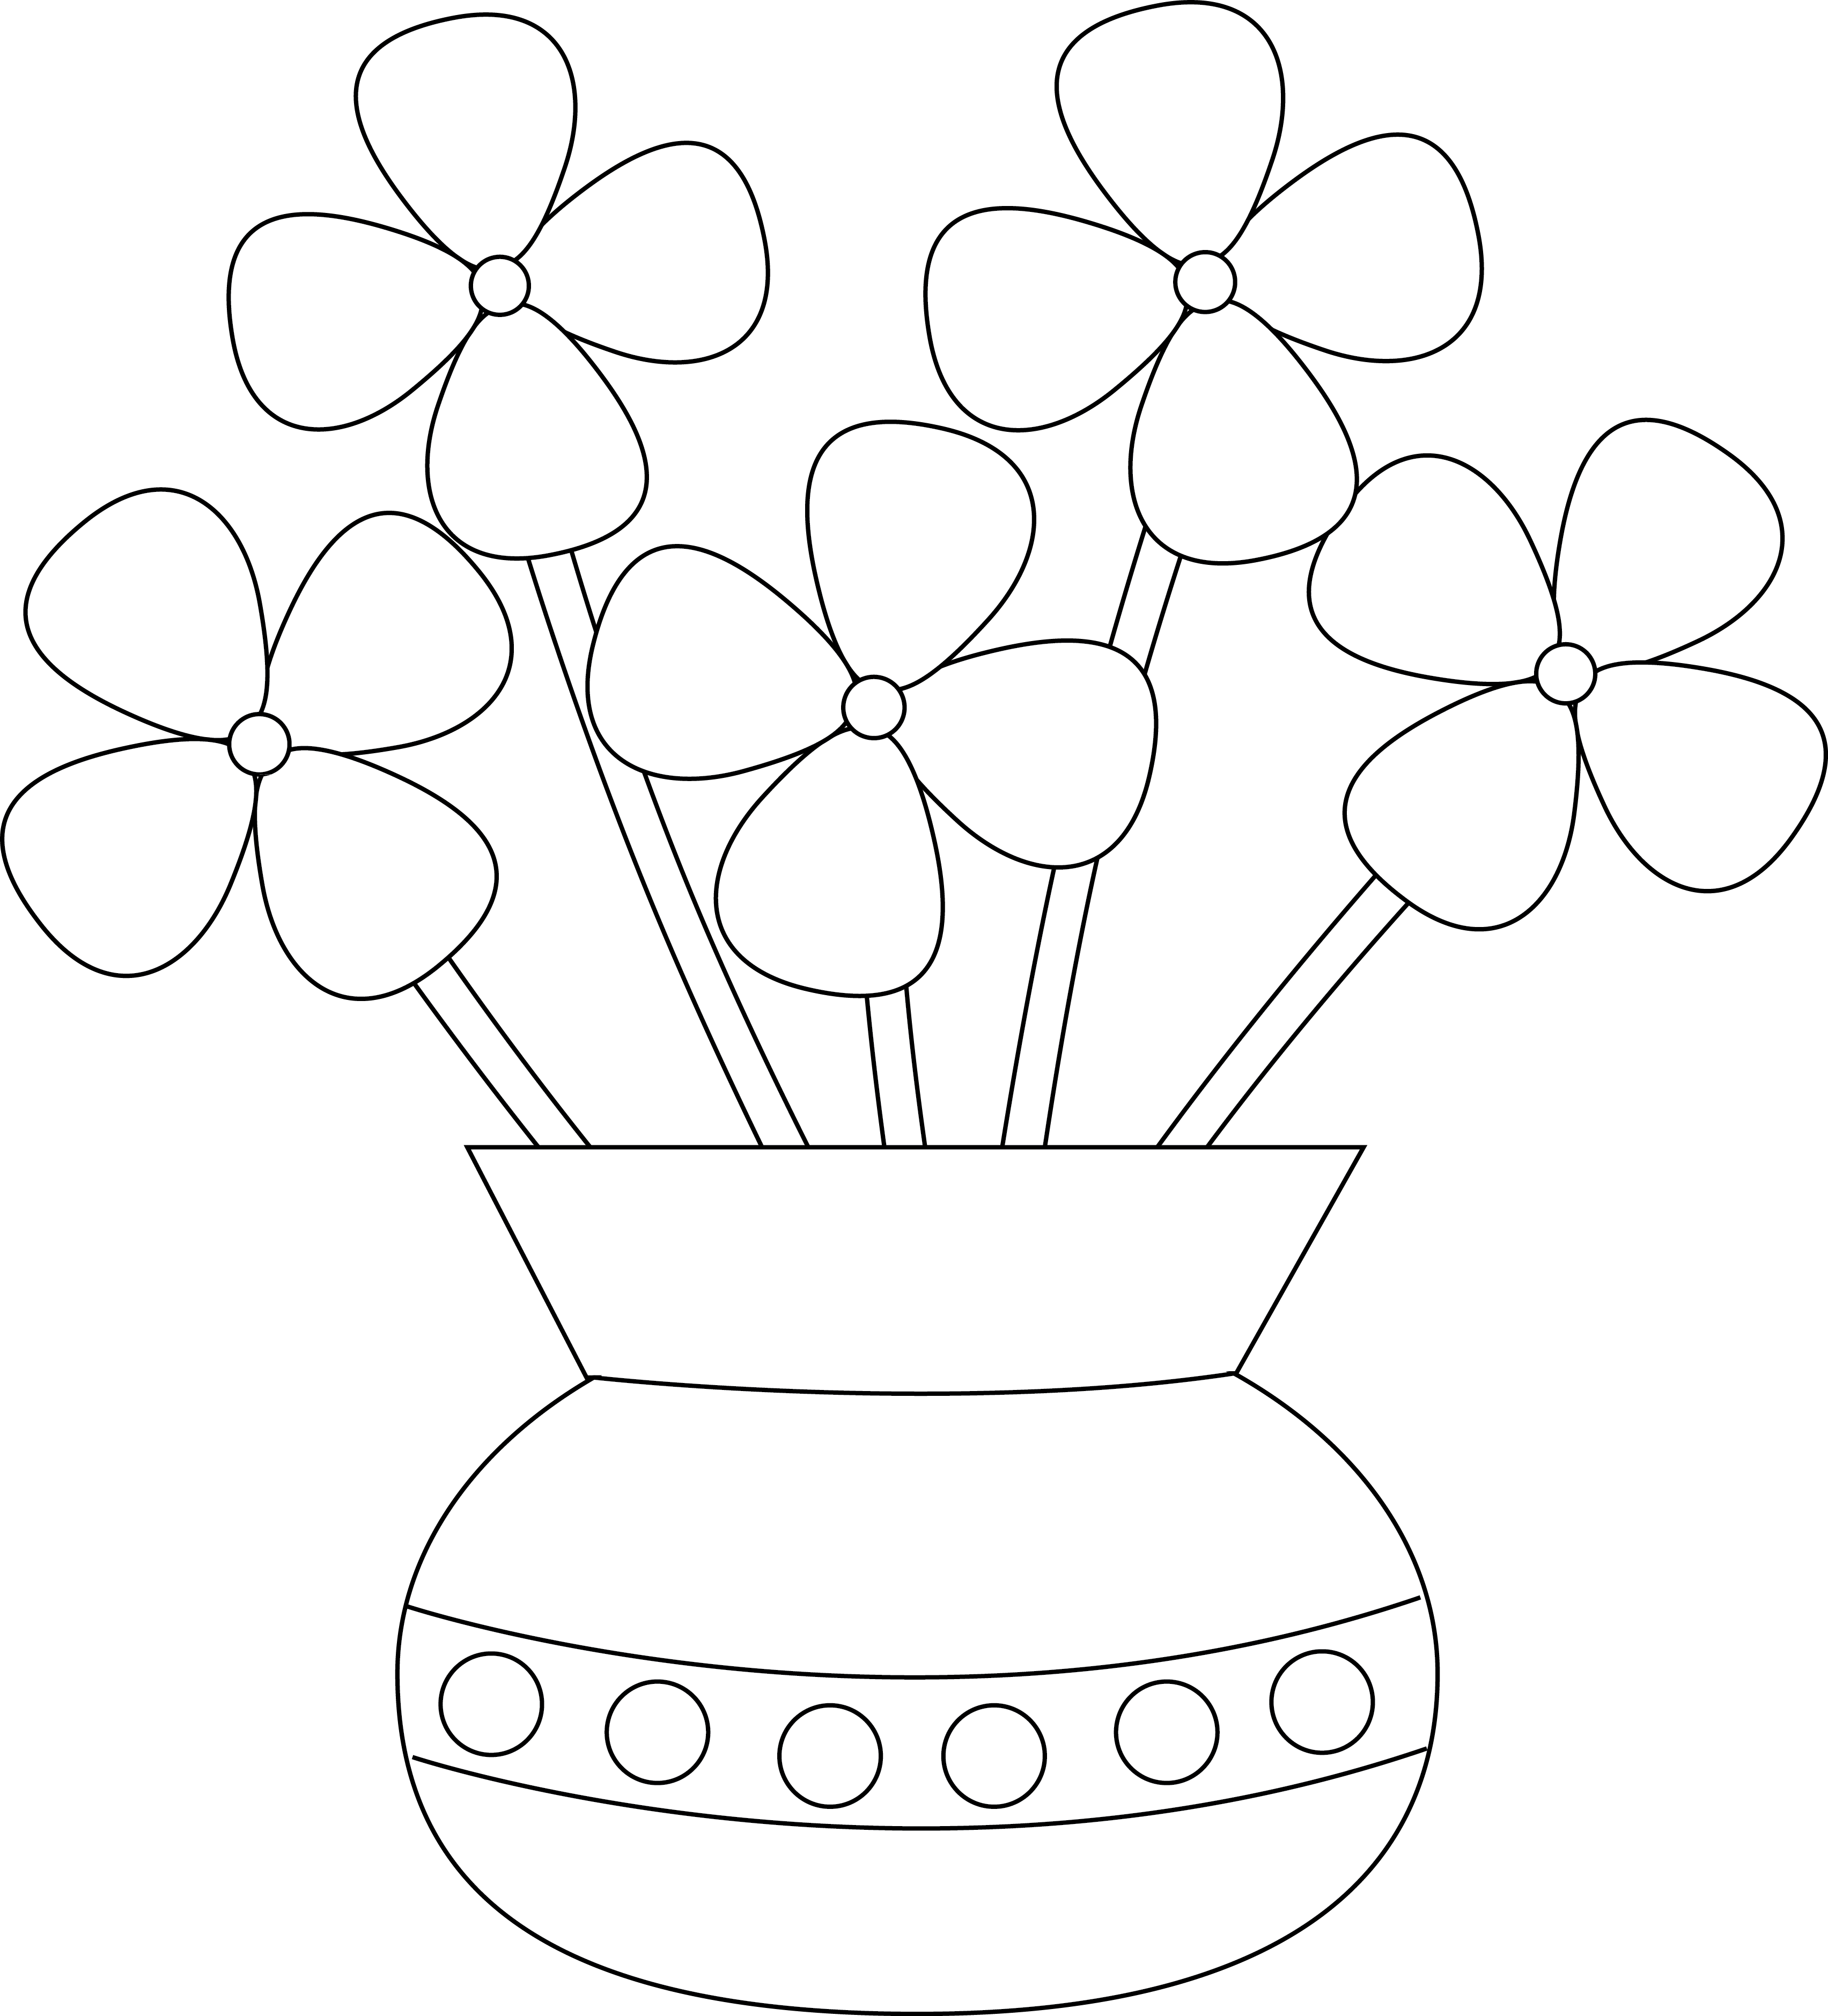 Empty flower vase clipart png transparent stock 28+ Collection of Flower Vase Drawing Step By Step | High quality ... png transparent stock